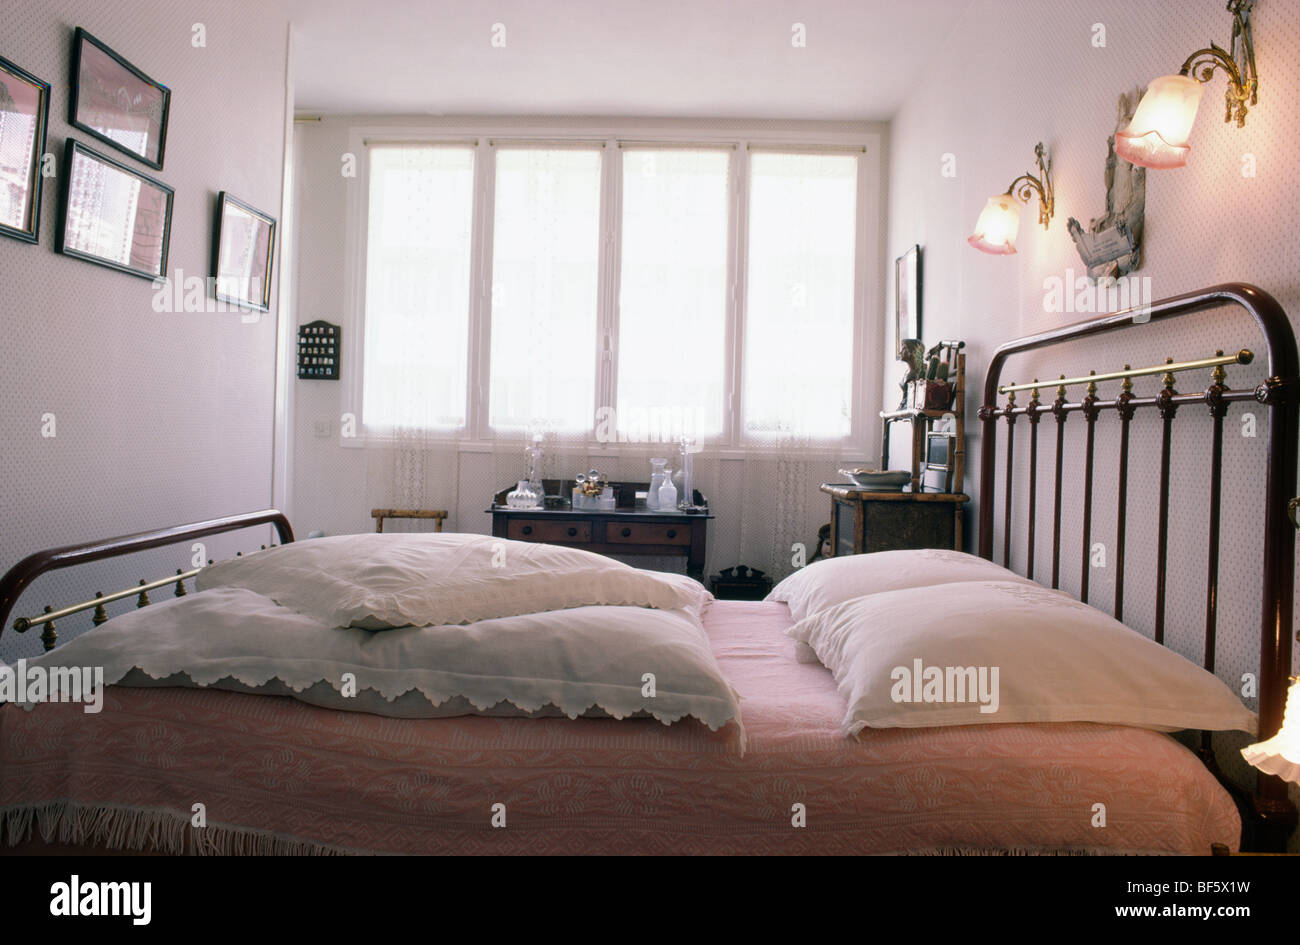 Over Bed Lights Victorian Glass Wall Lights Above Black Metal Bed With